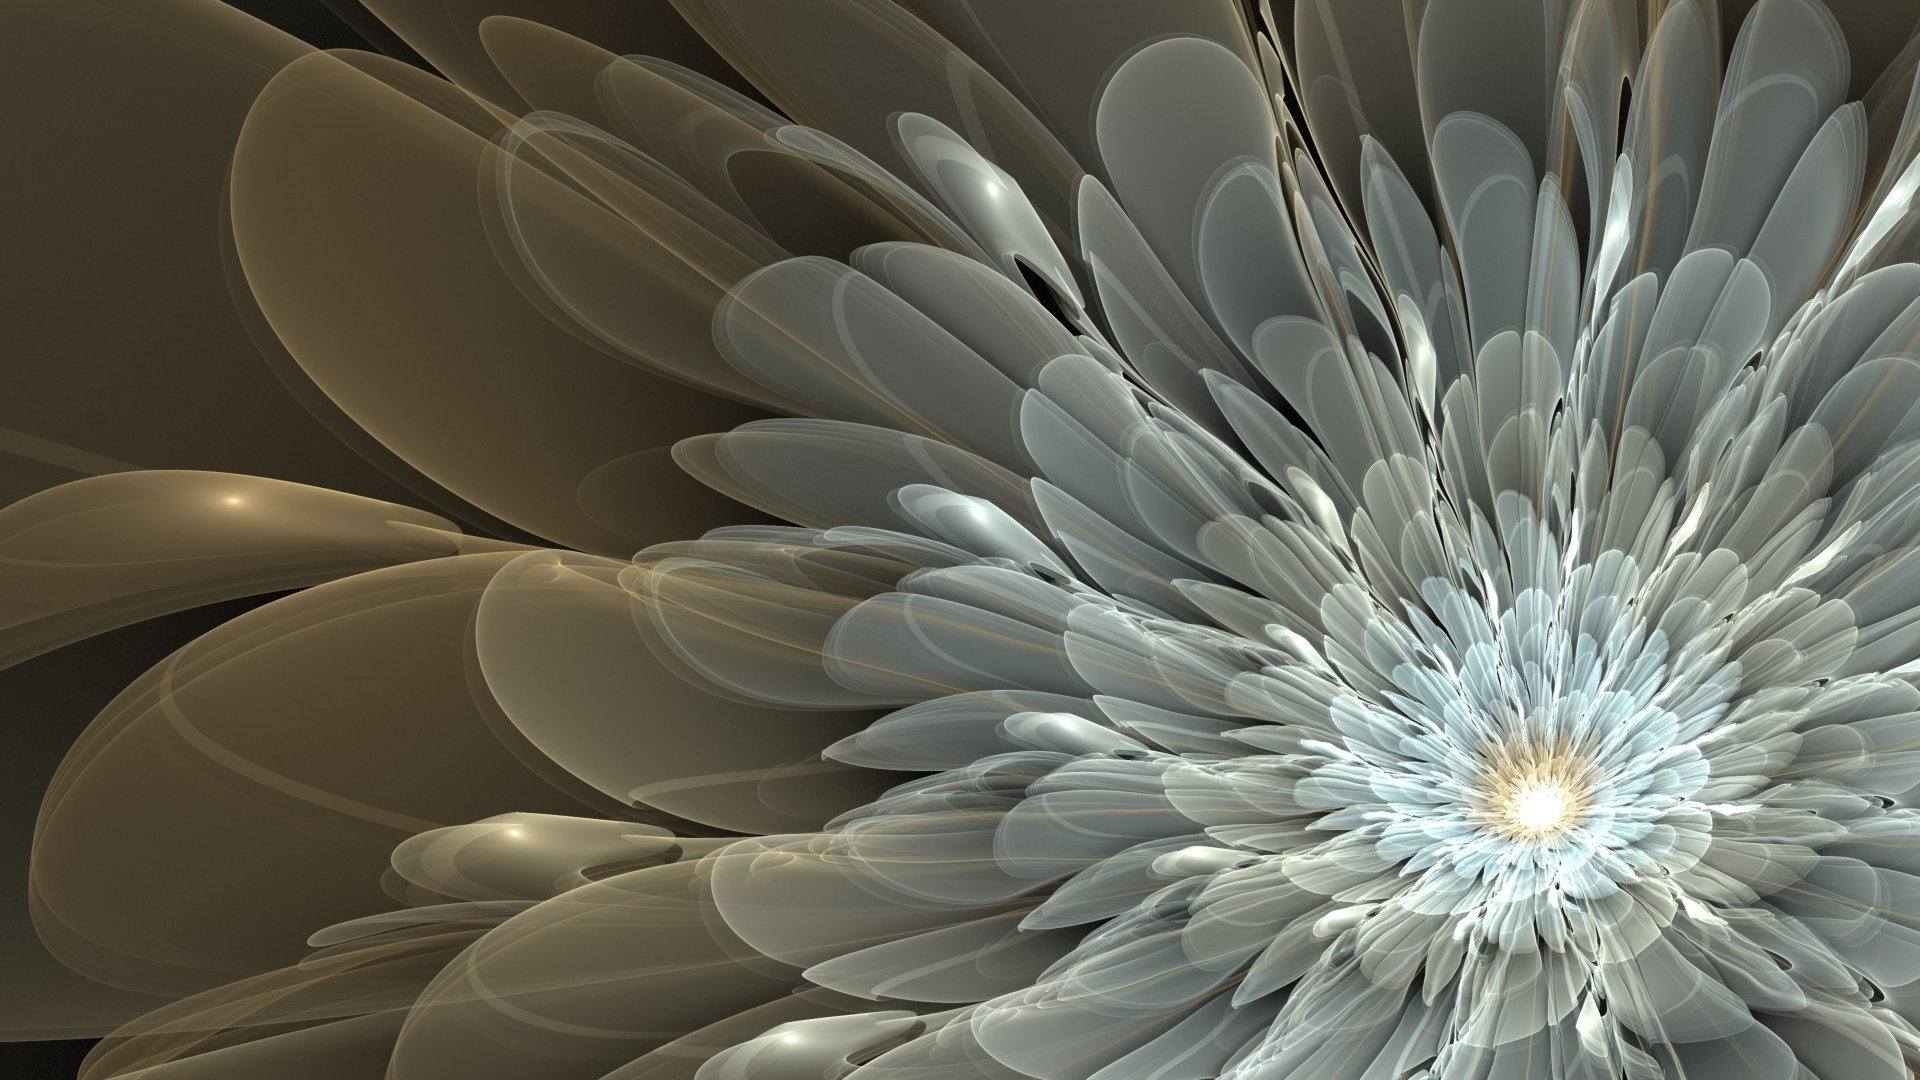 Abstract - Fractal  CGI Digital Art 3D Abstract Artistic Wallpaper